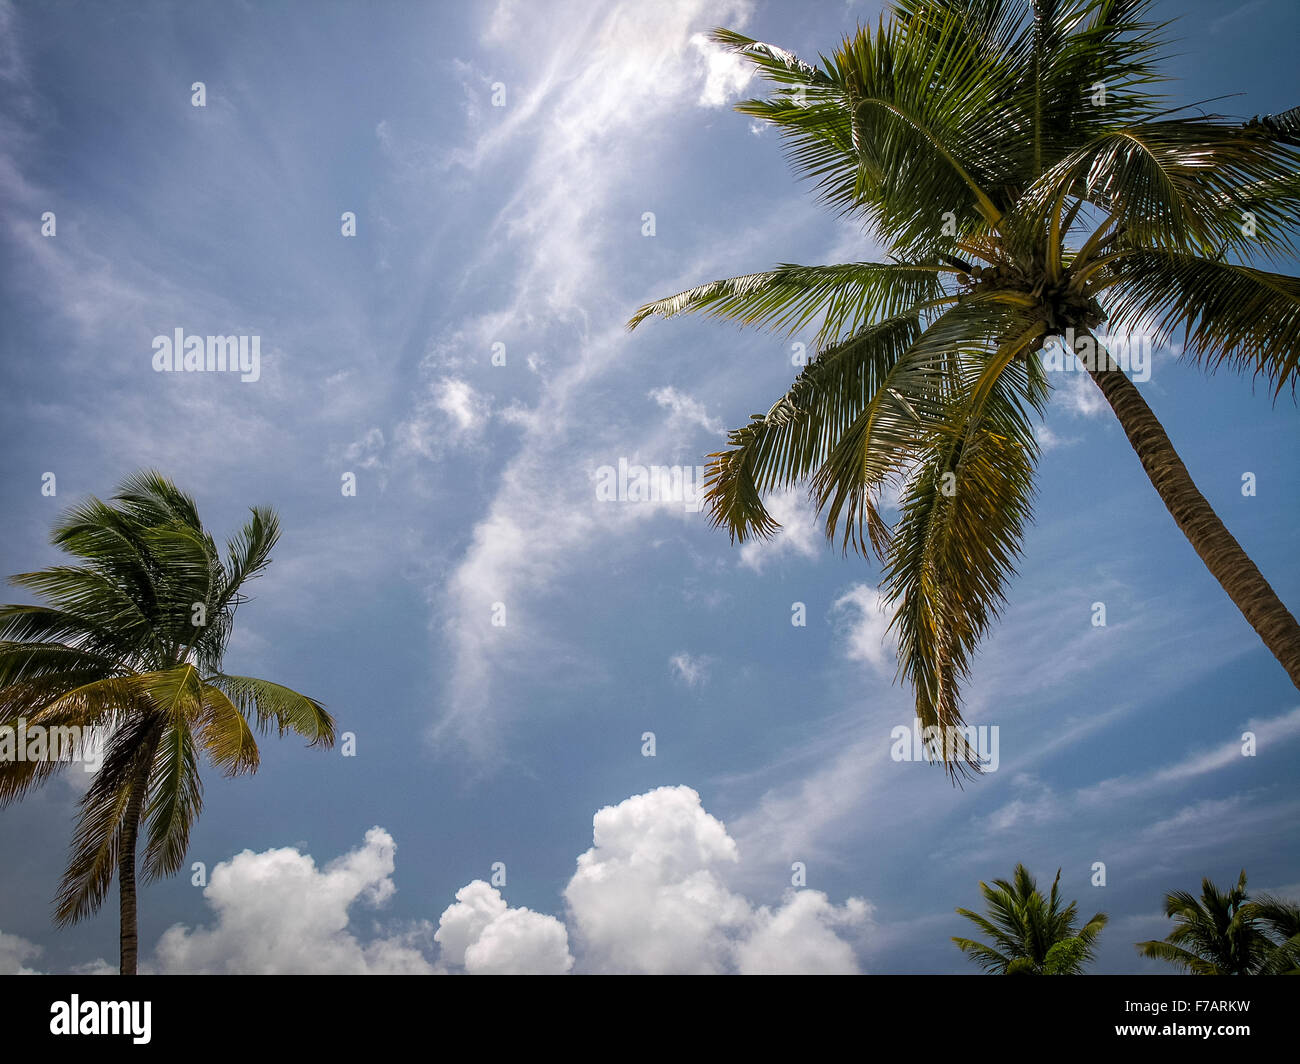 caribbean-palm-trees-dominican-republic-